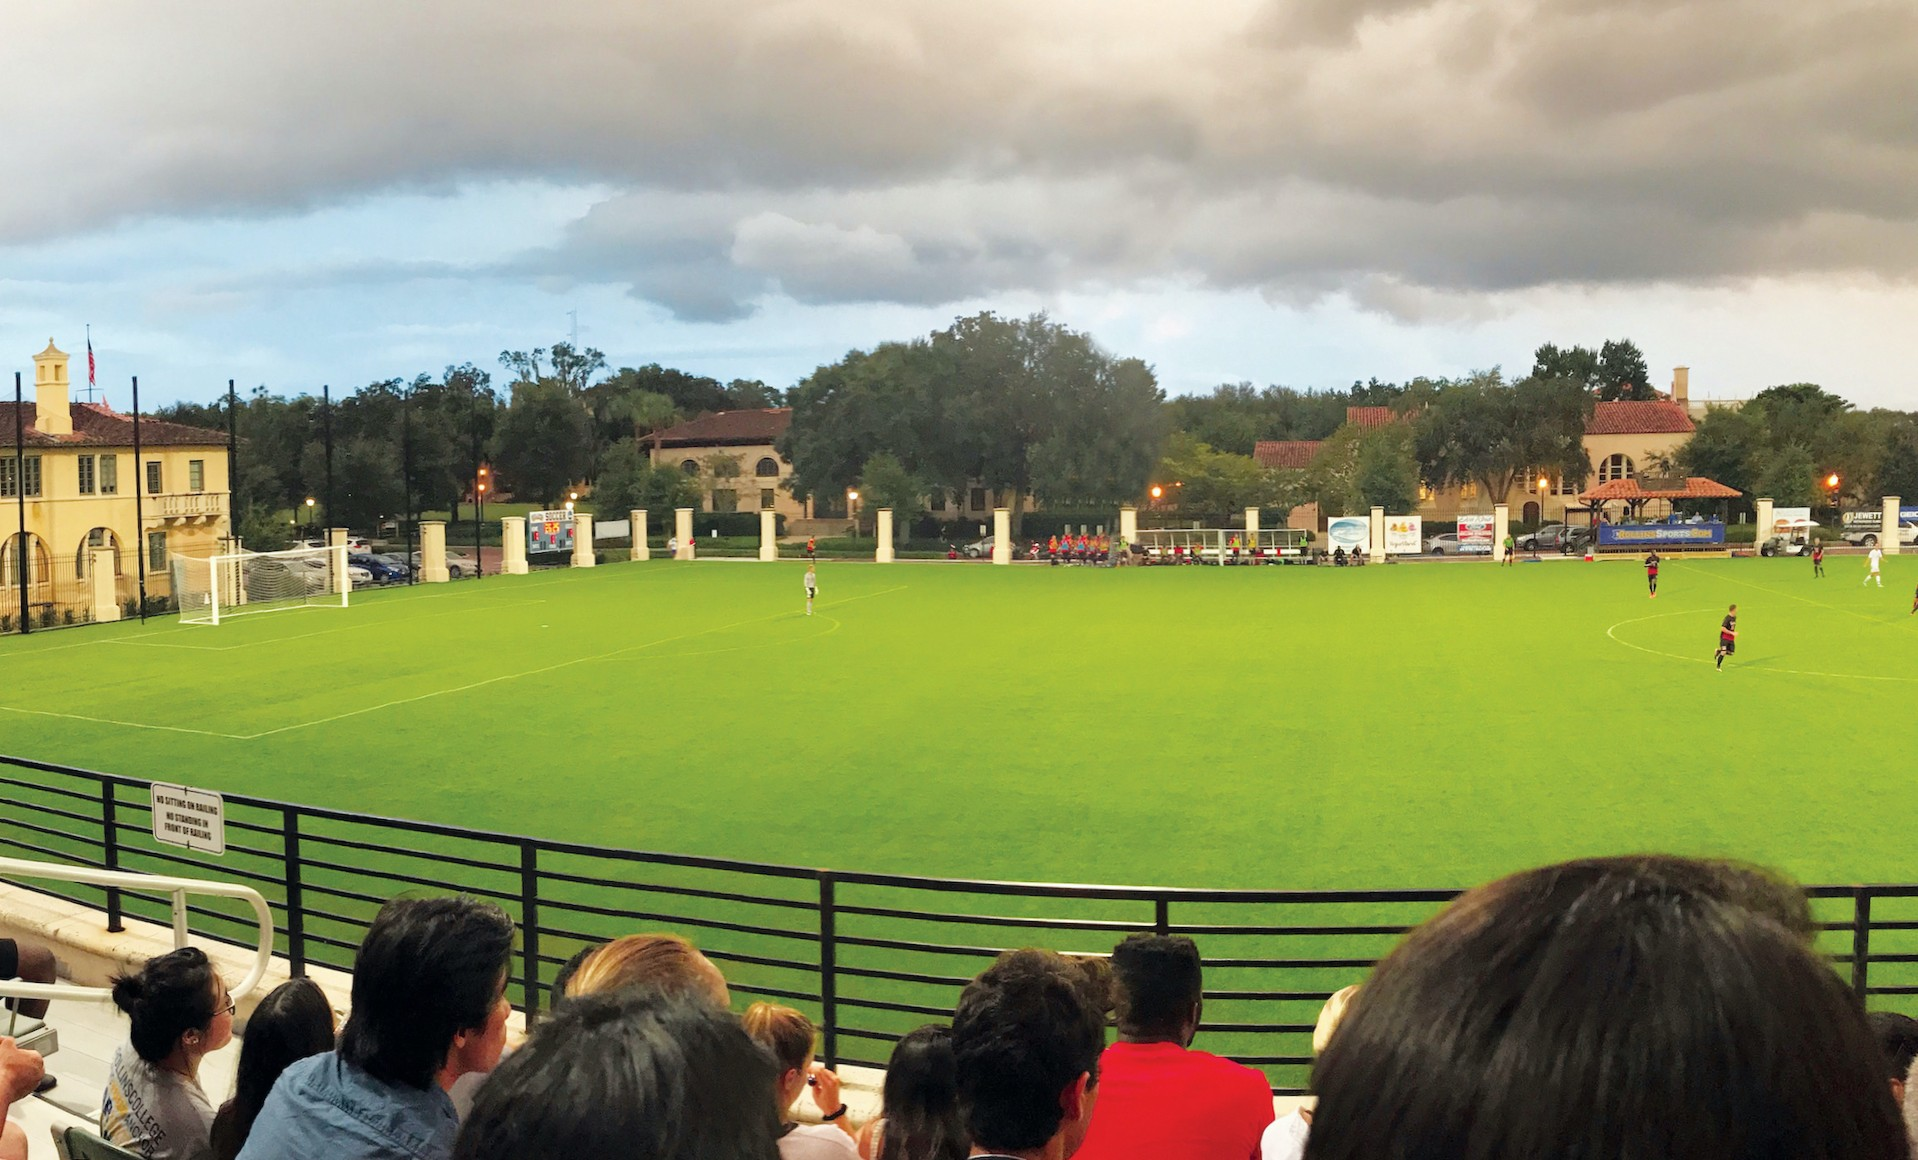 Rollins College Sandspur Stadium and soccer field.